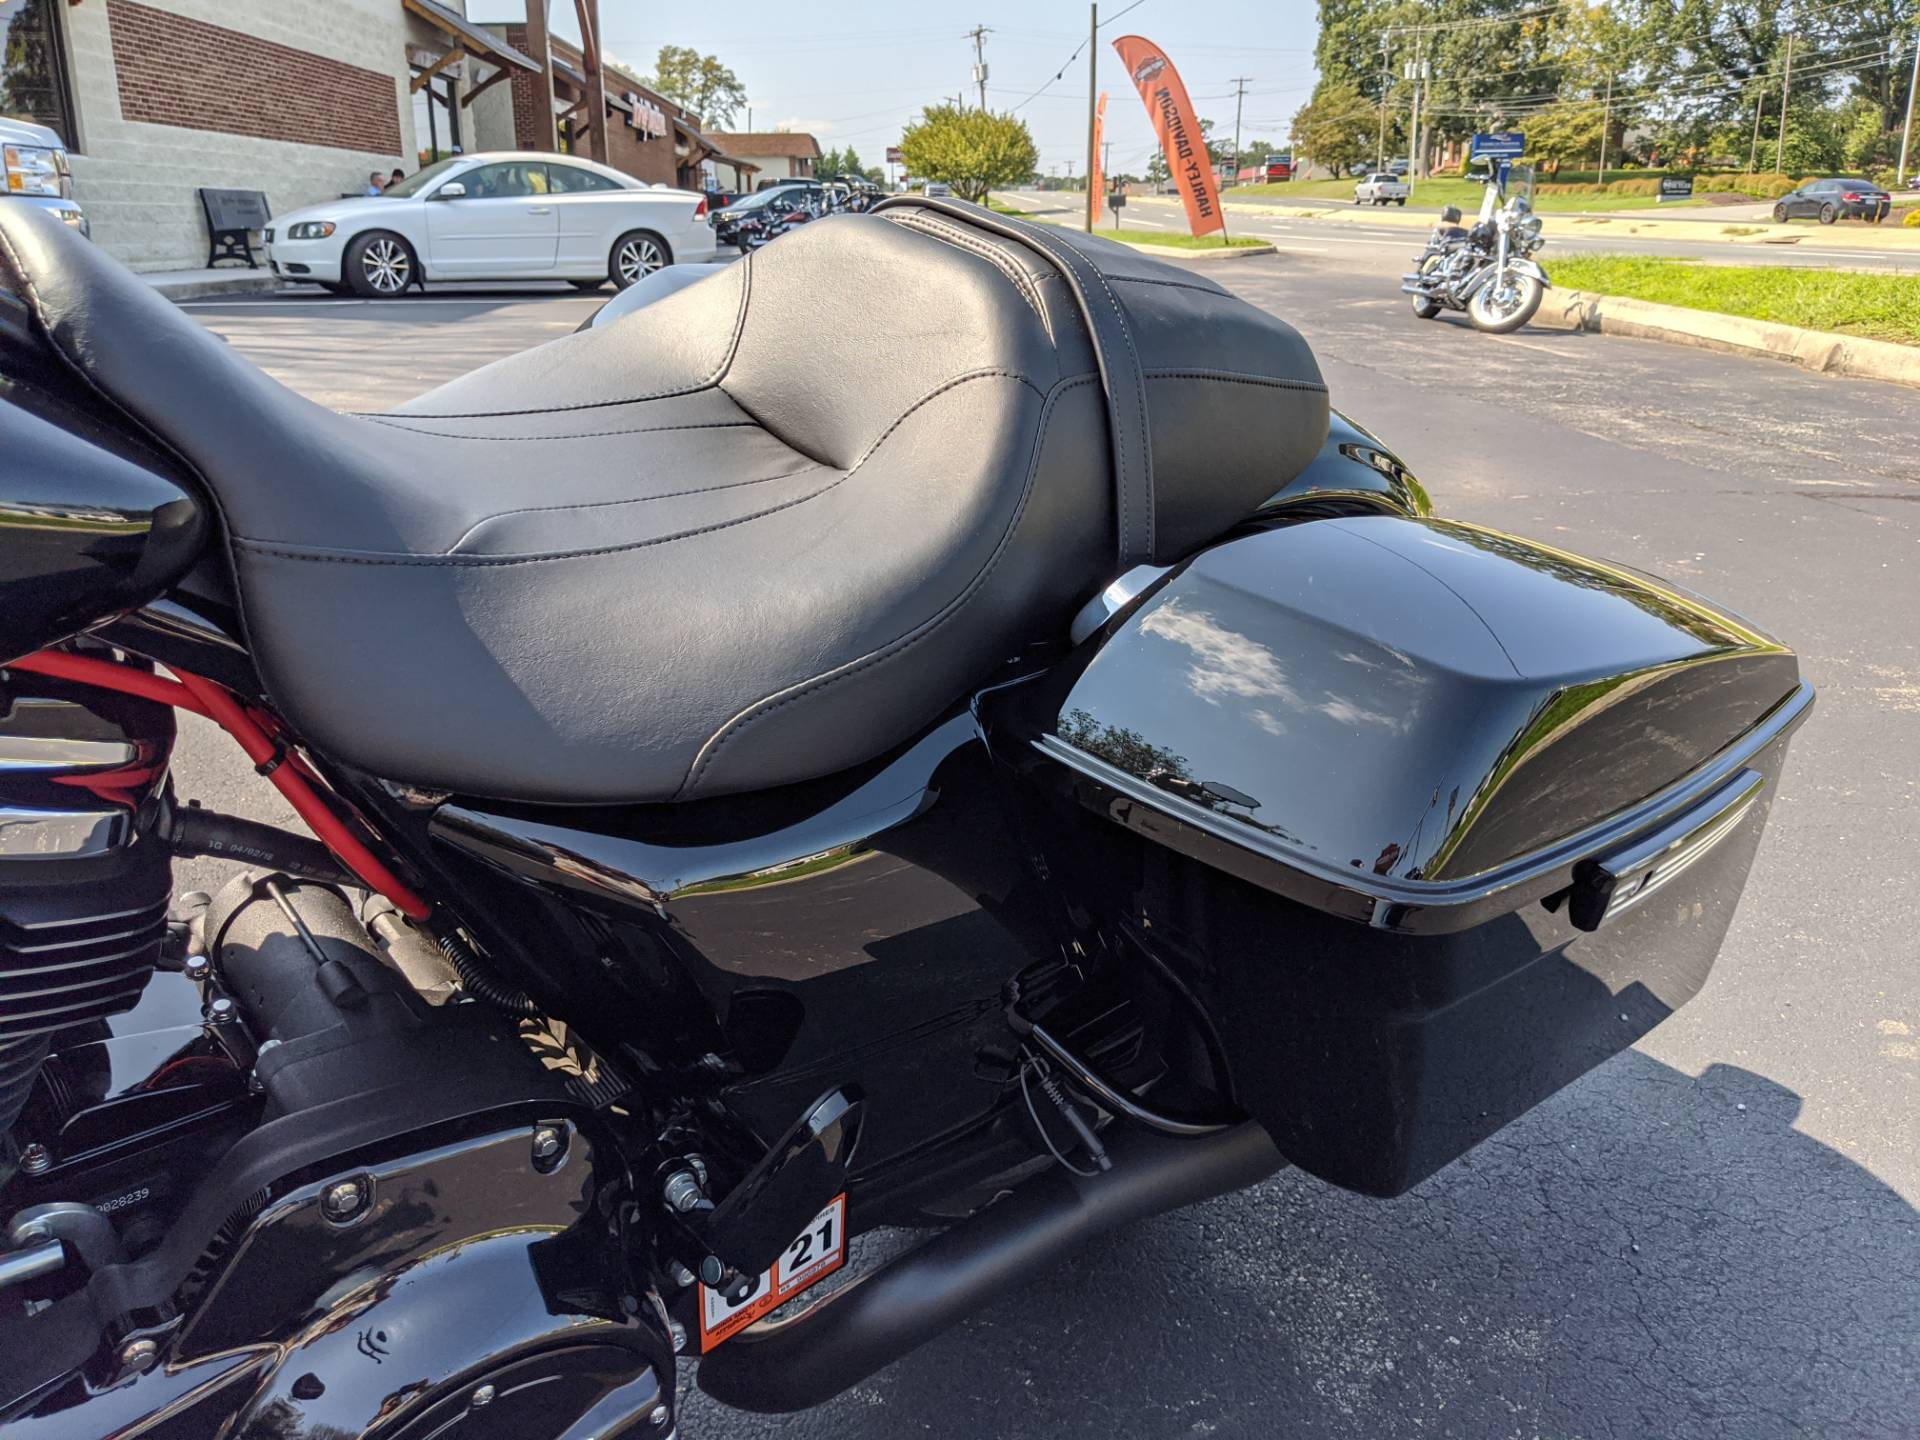 2019 Harley-Davidson Road Glide® Special in Lynchburg, Virginia - Photo 15